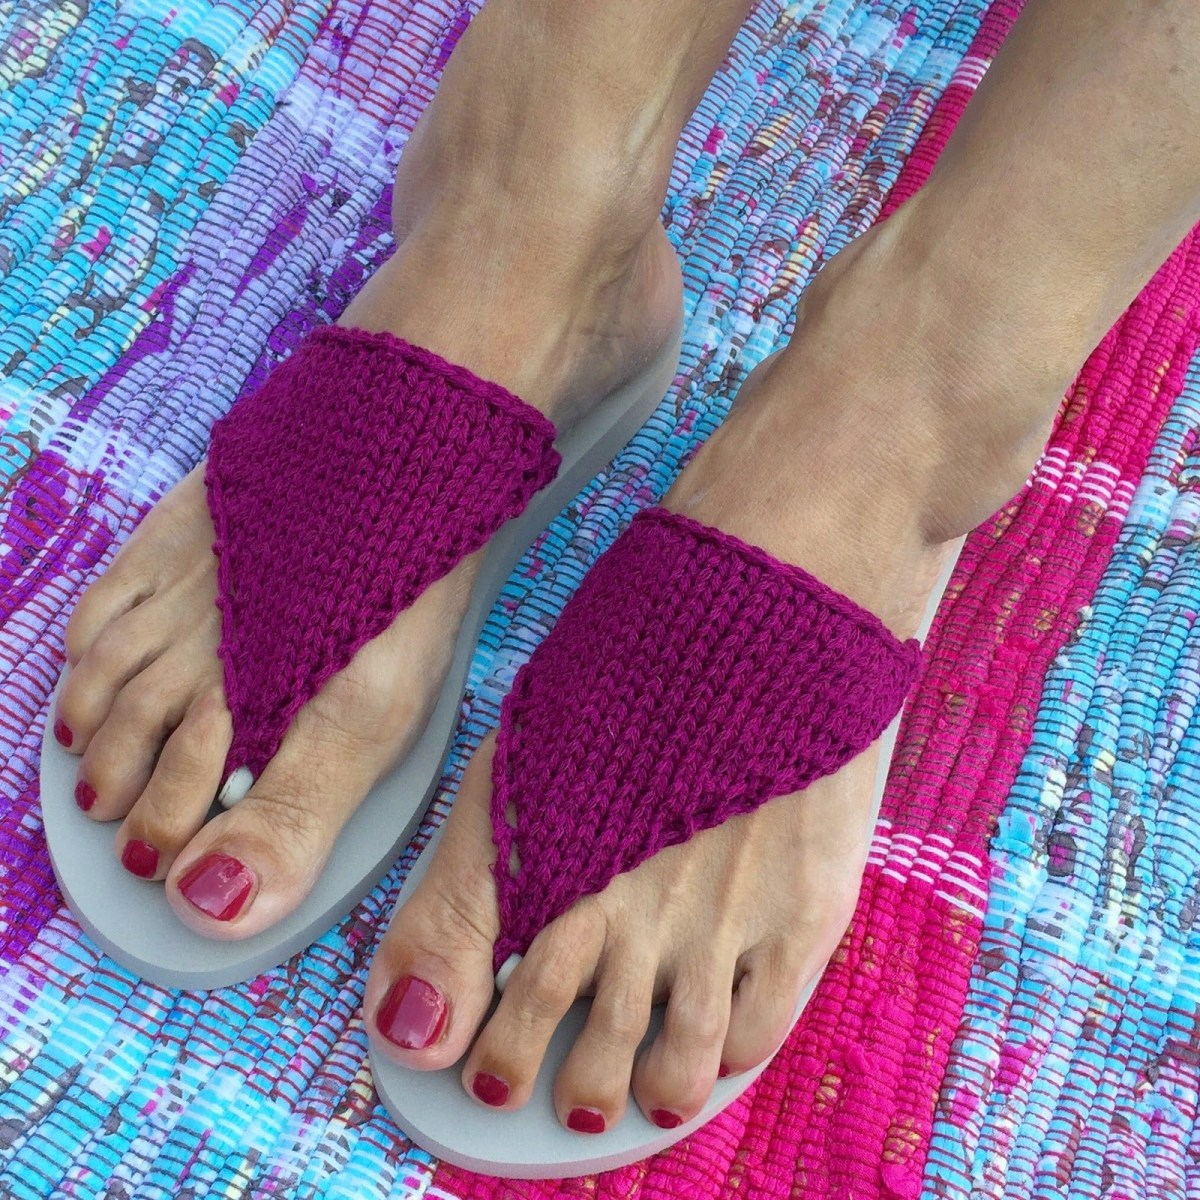 Knitted flip flop DIY Picturesque Flip Flops Ideas That Are Great For Indoor Or Beach Day